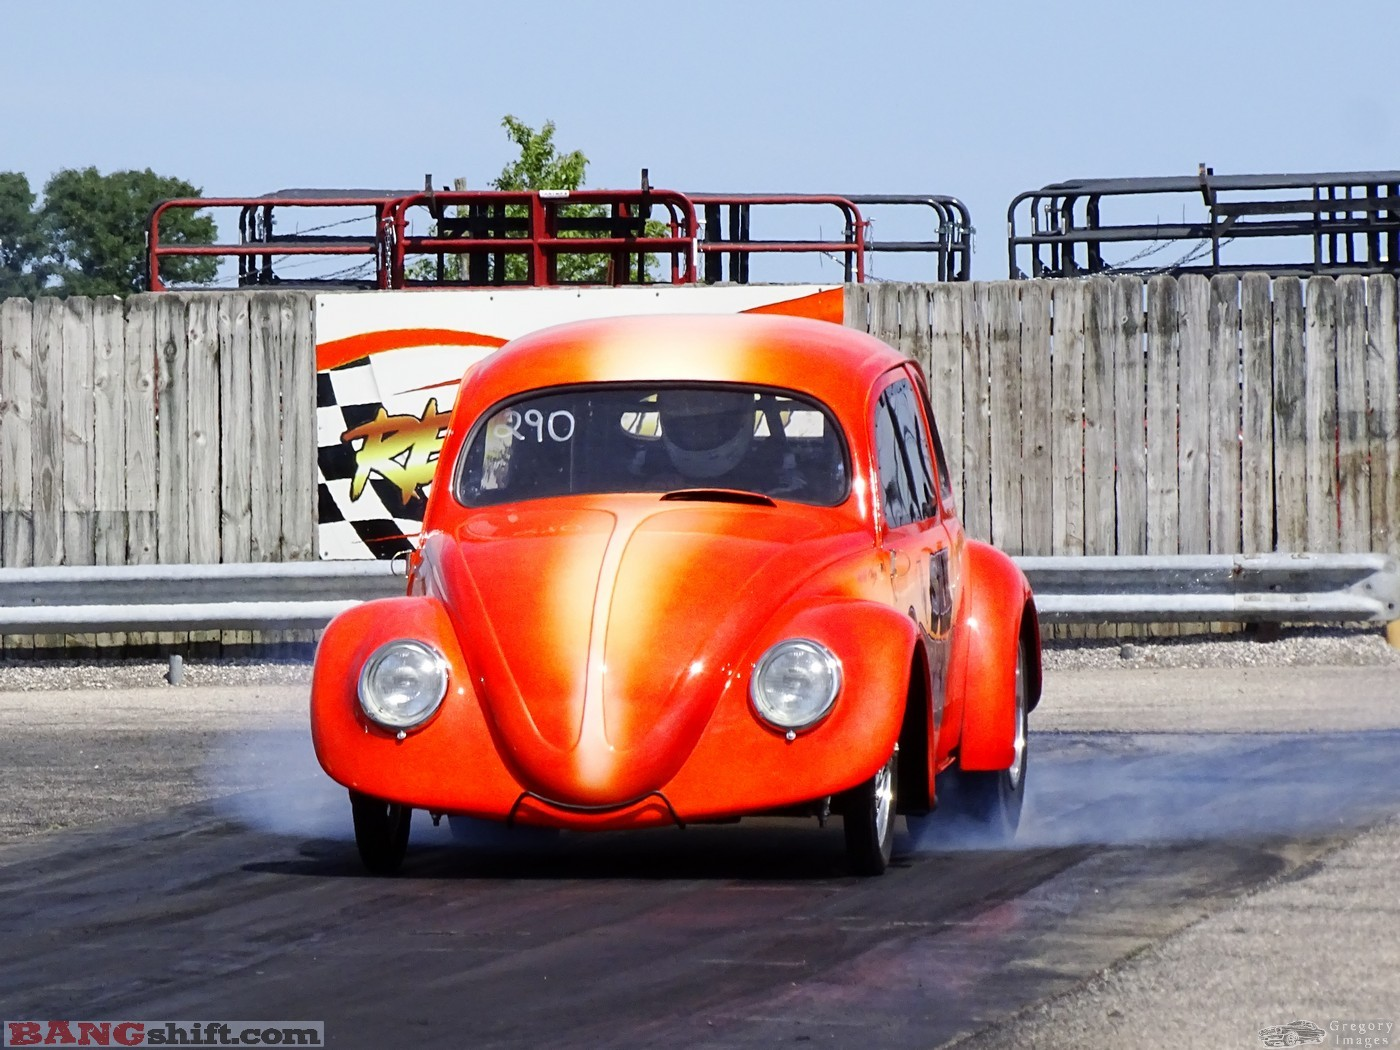 US60 Nationals Straight Axle Mafia Drag Action Photos: Some Of The Coolest Cars In The Country, Here!